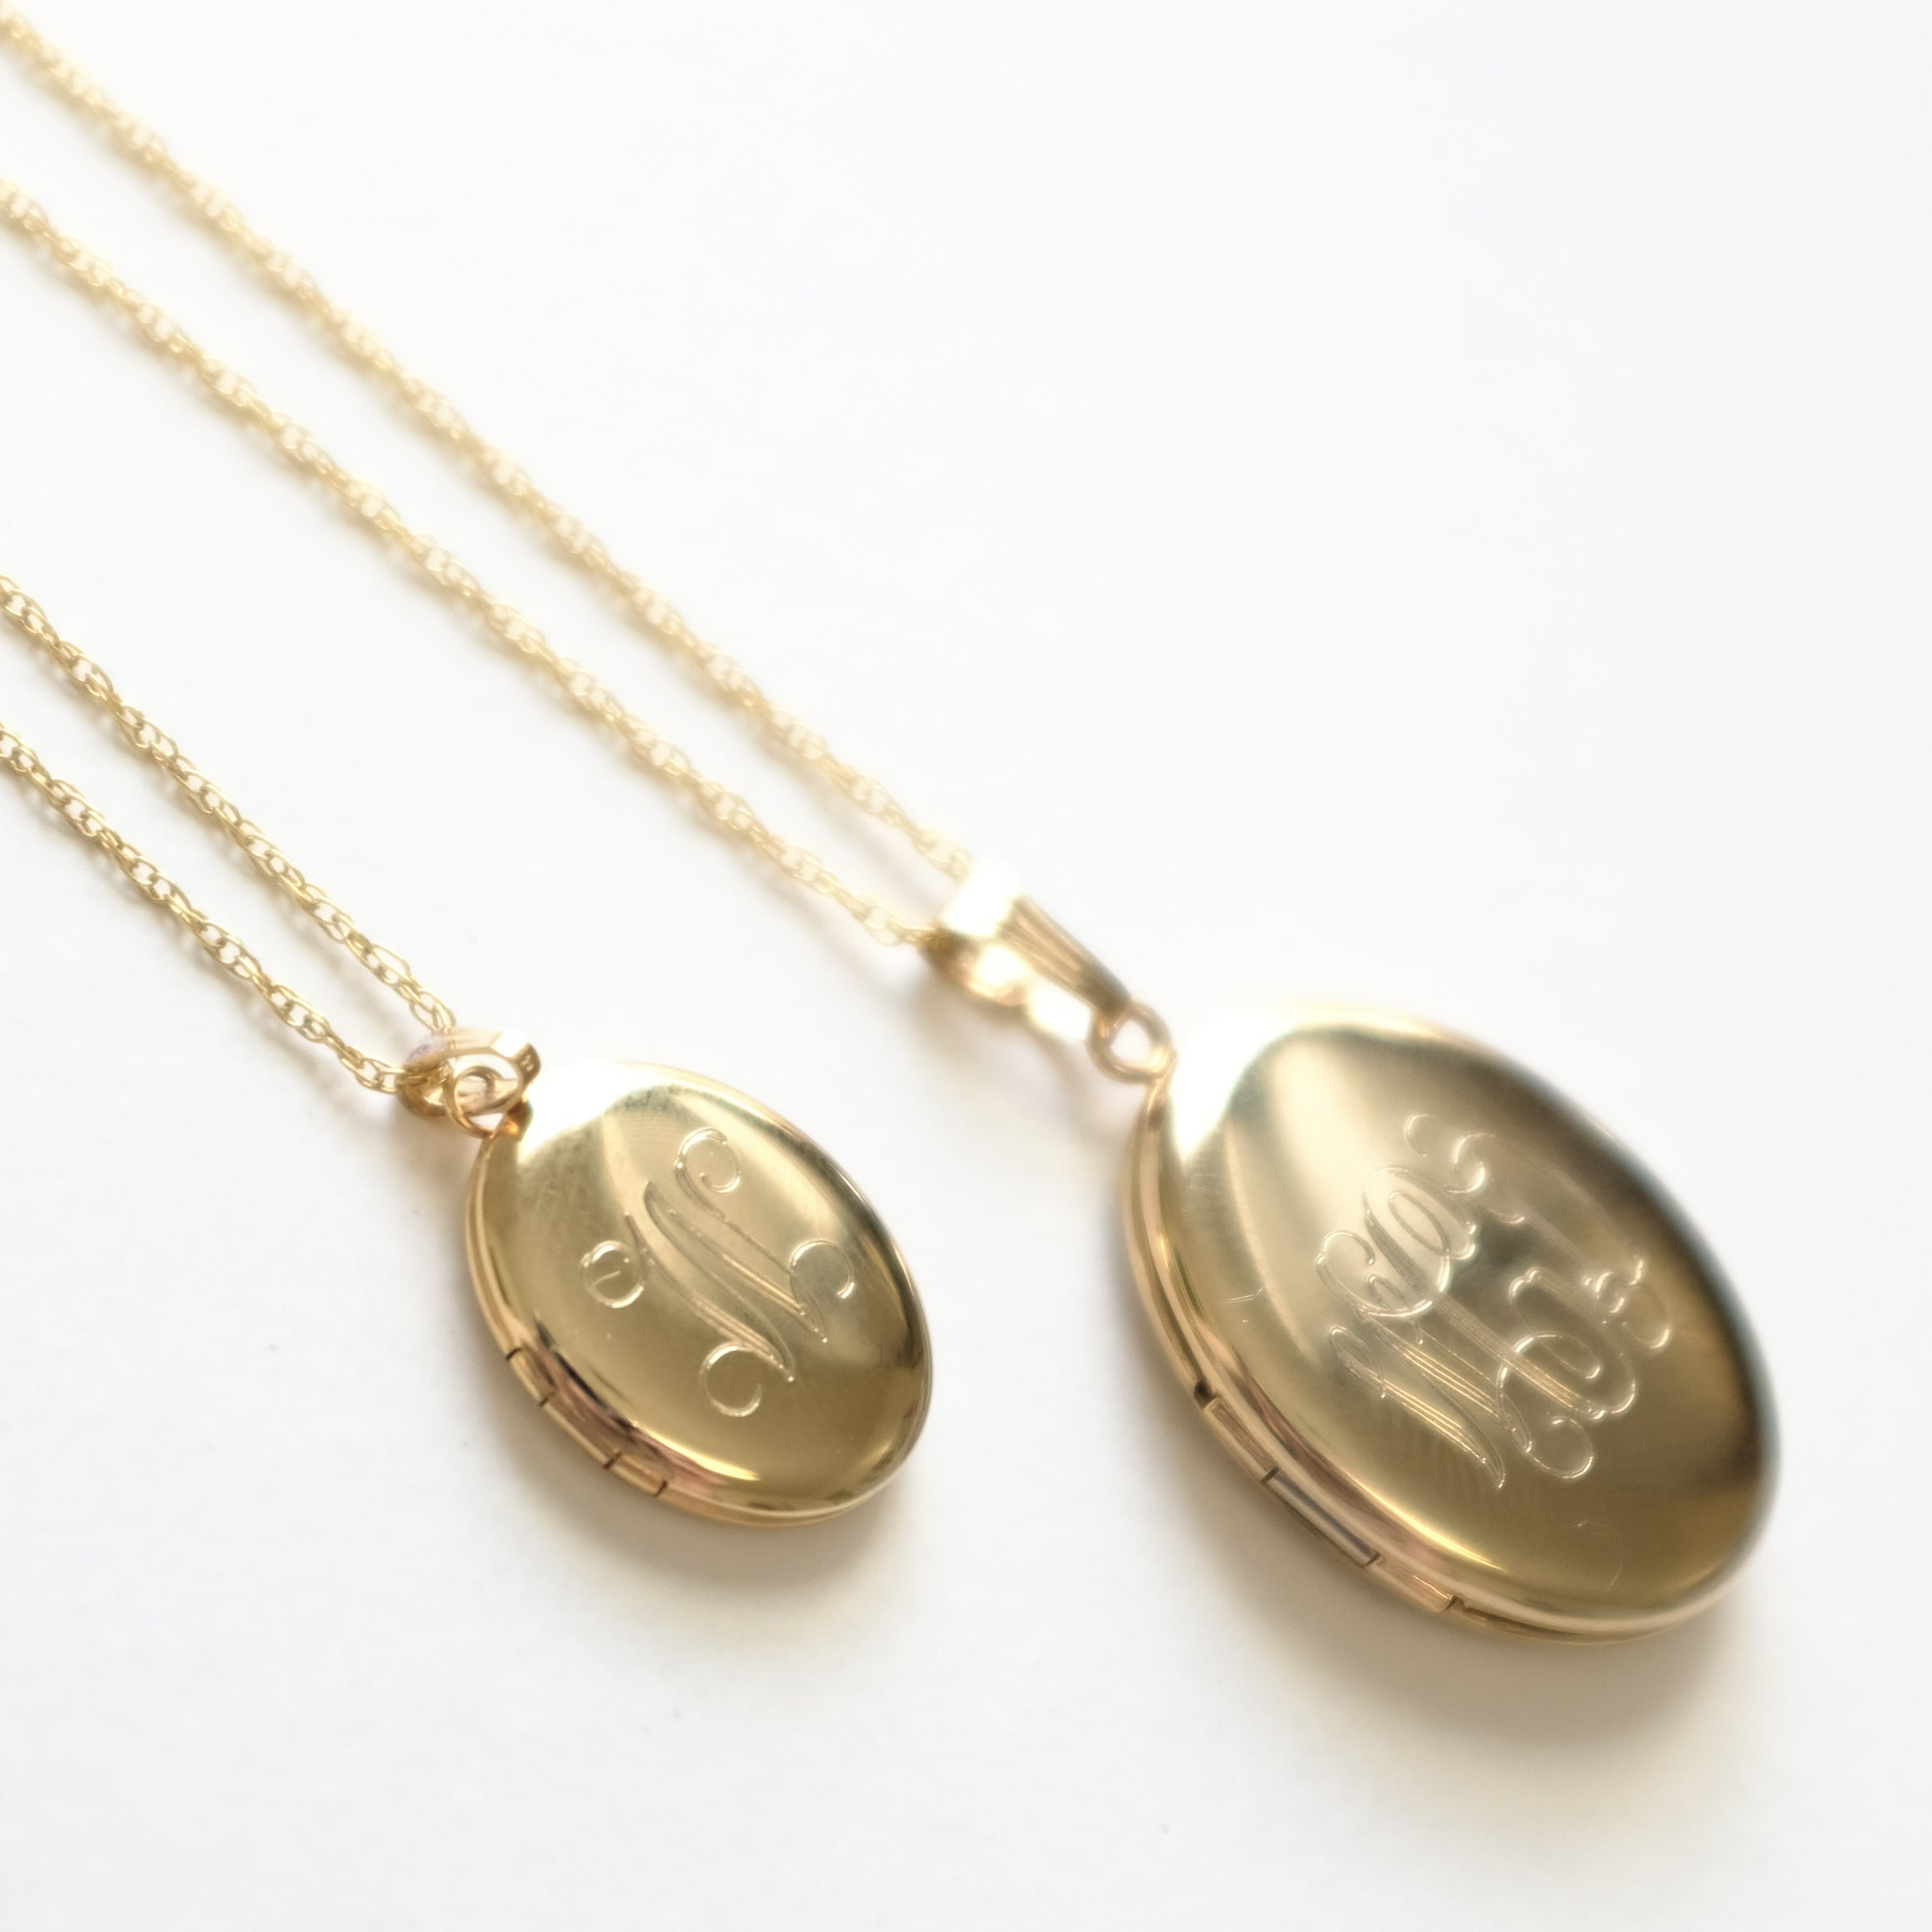 Z14k Gold Filled Oval Locket